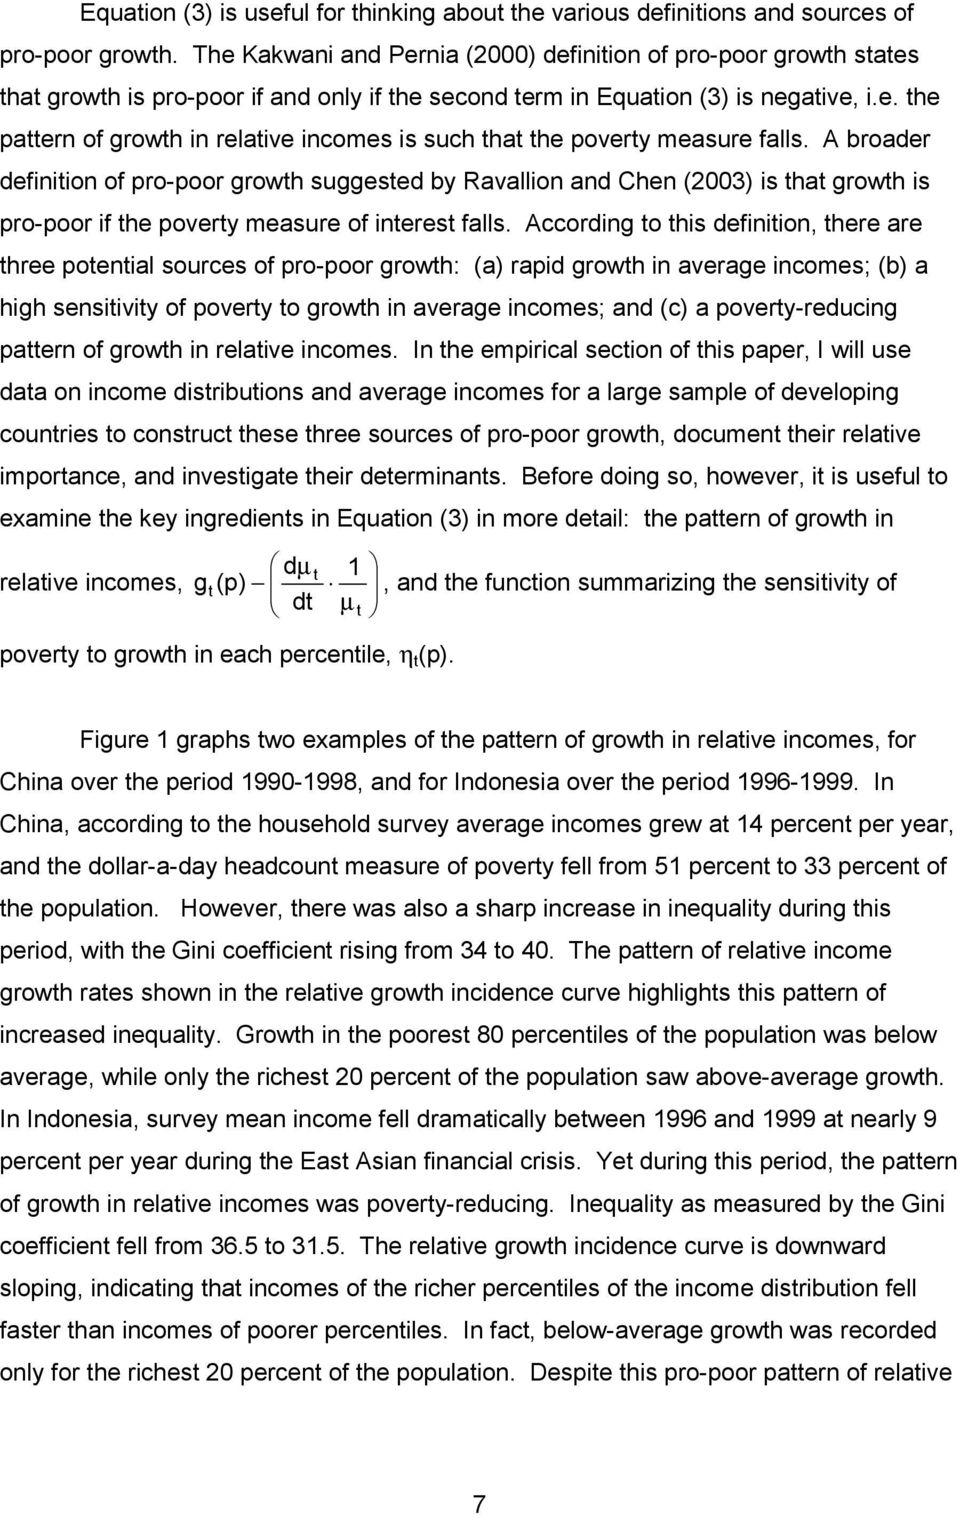 A broader definiion of pro-poor growh suggesed by Ravallion and Chen (2003) is ha growh is pro-poor if he povery measure of ineres falls.